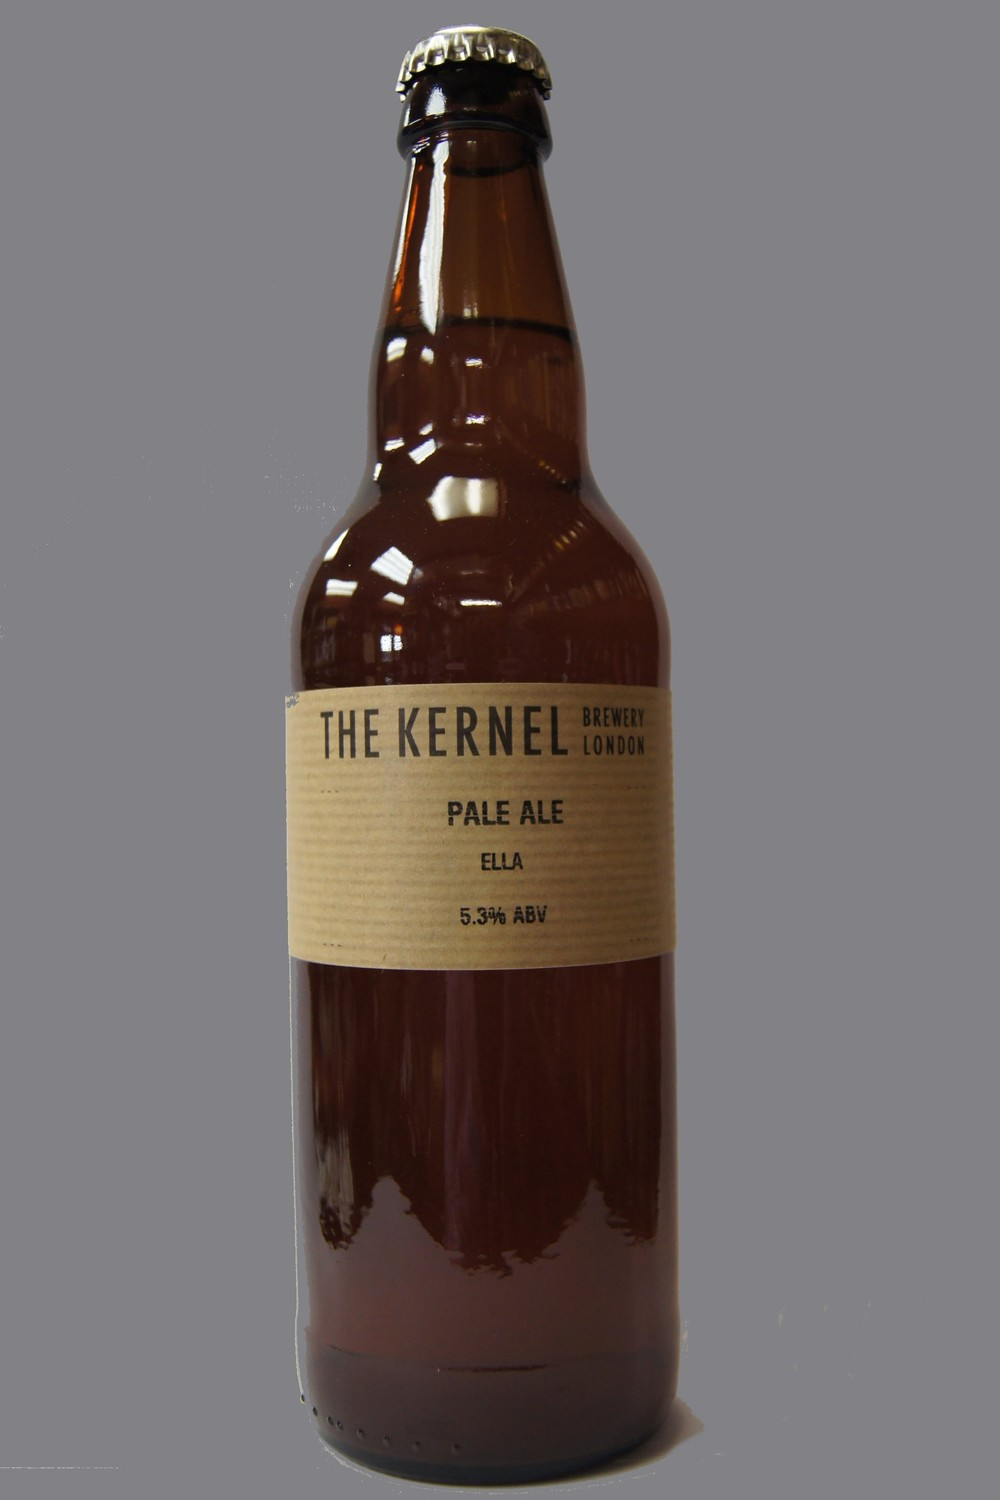 THE KERNEL BREWERY-Pale Ale ELLA.jpg